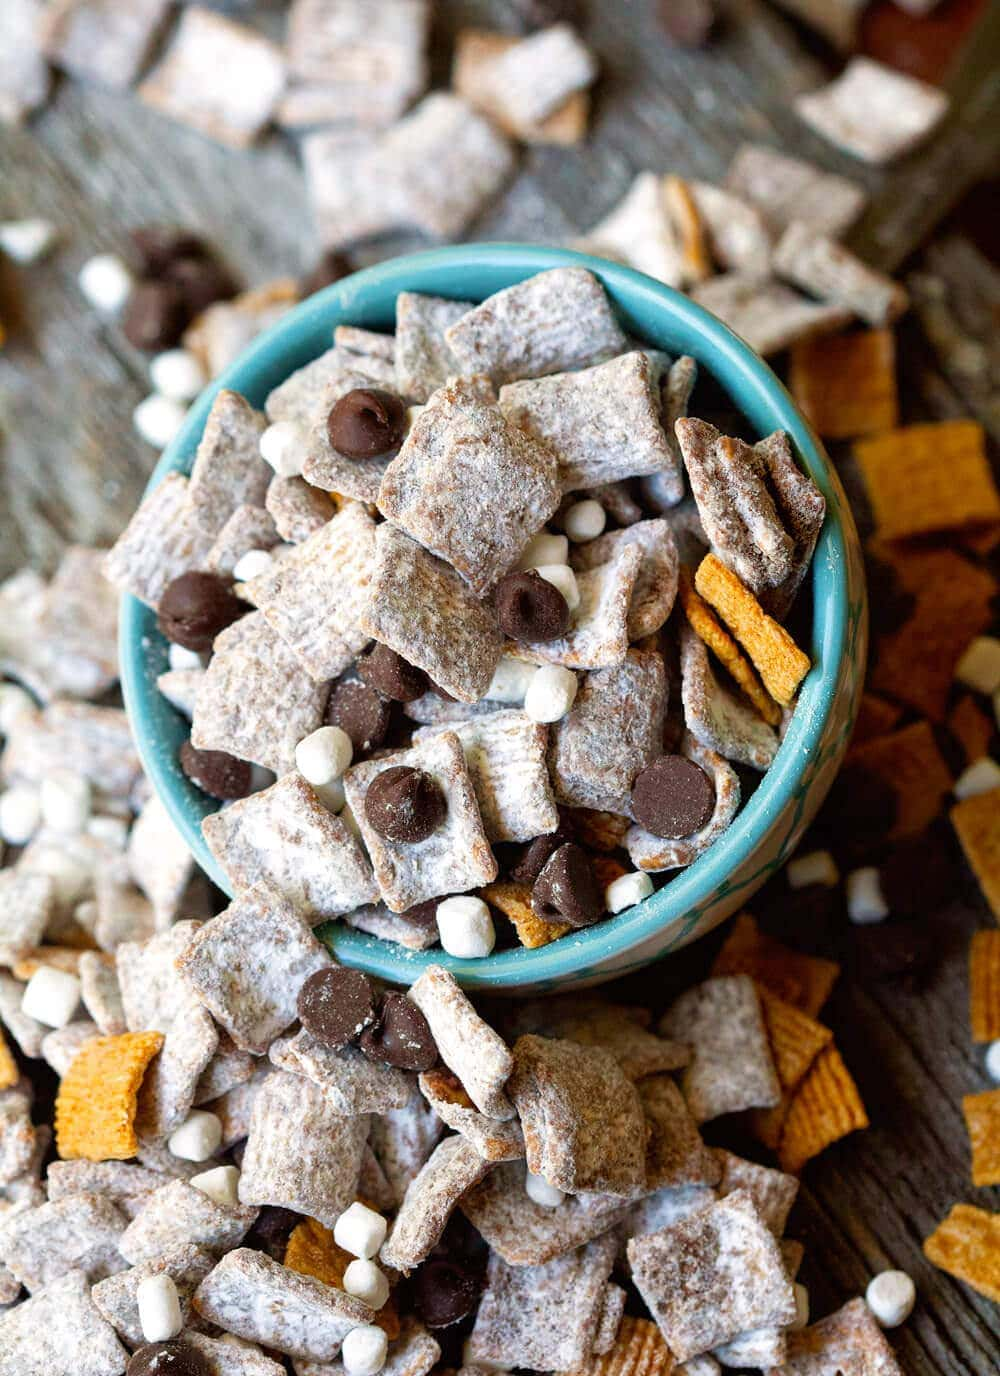 Smores Muddy Buddies is summer's favorite snack mix. You only need 5 ingredients to make this addicitng treat!